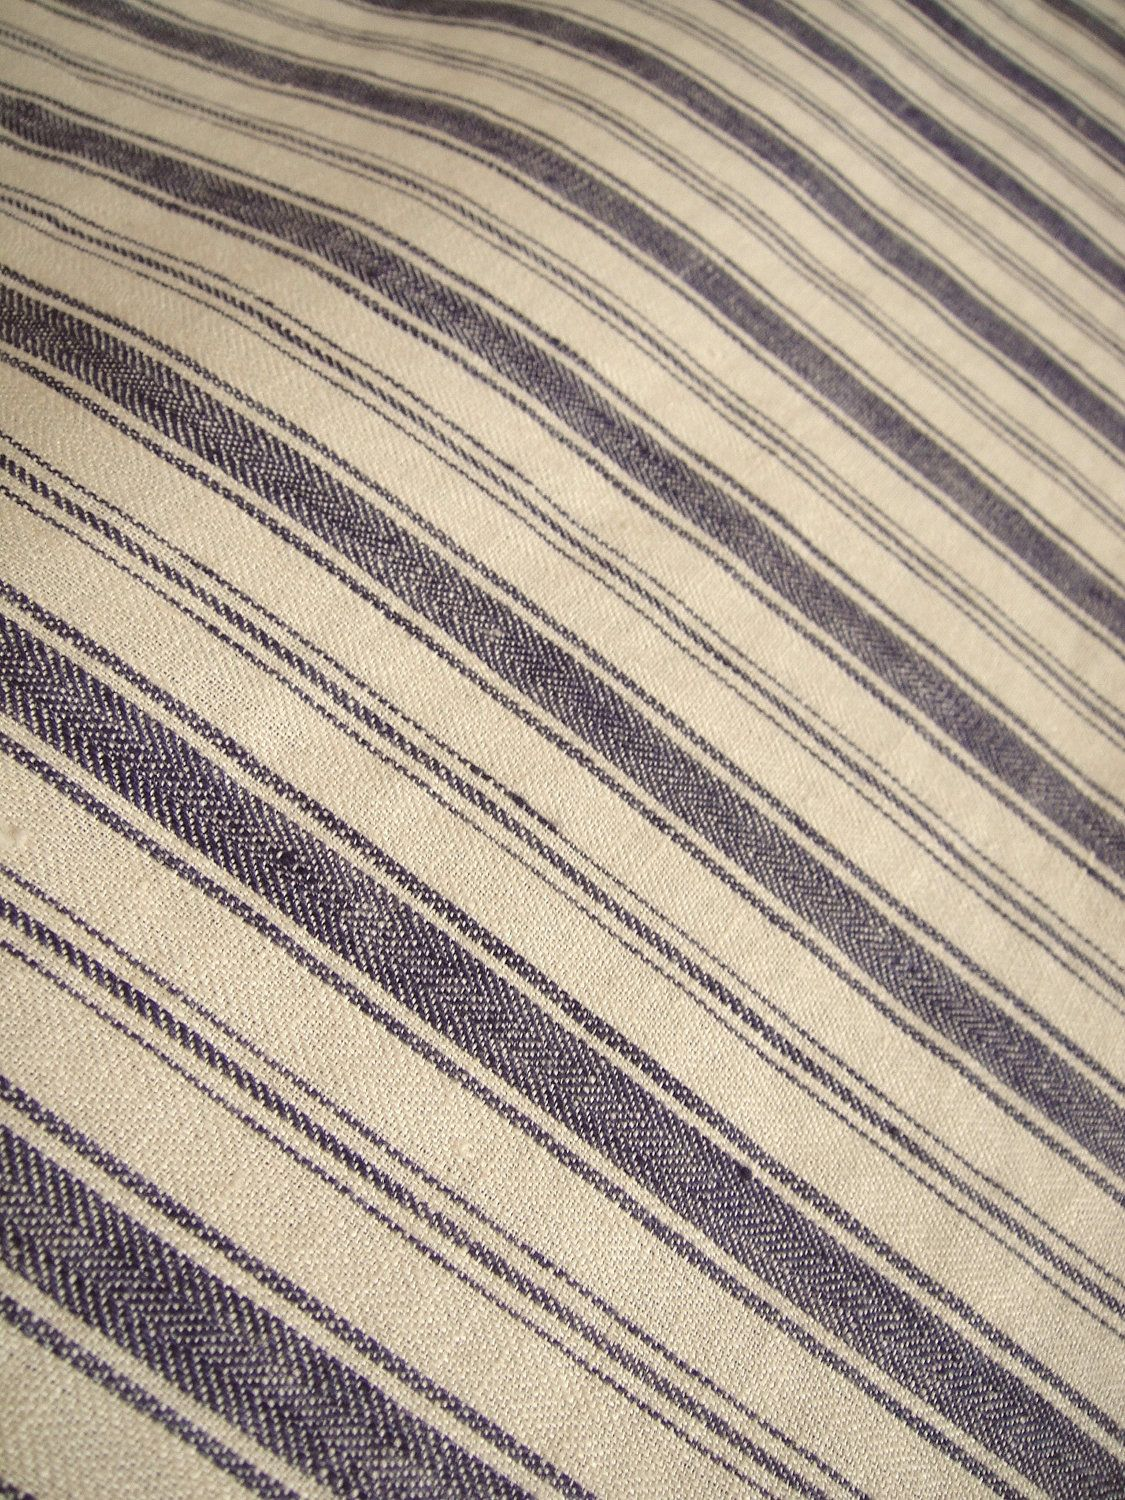 Meterage french belgian linen ticking fabric by libeco for Ticking fabric